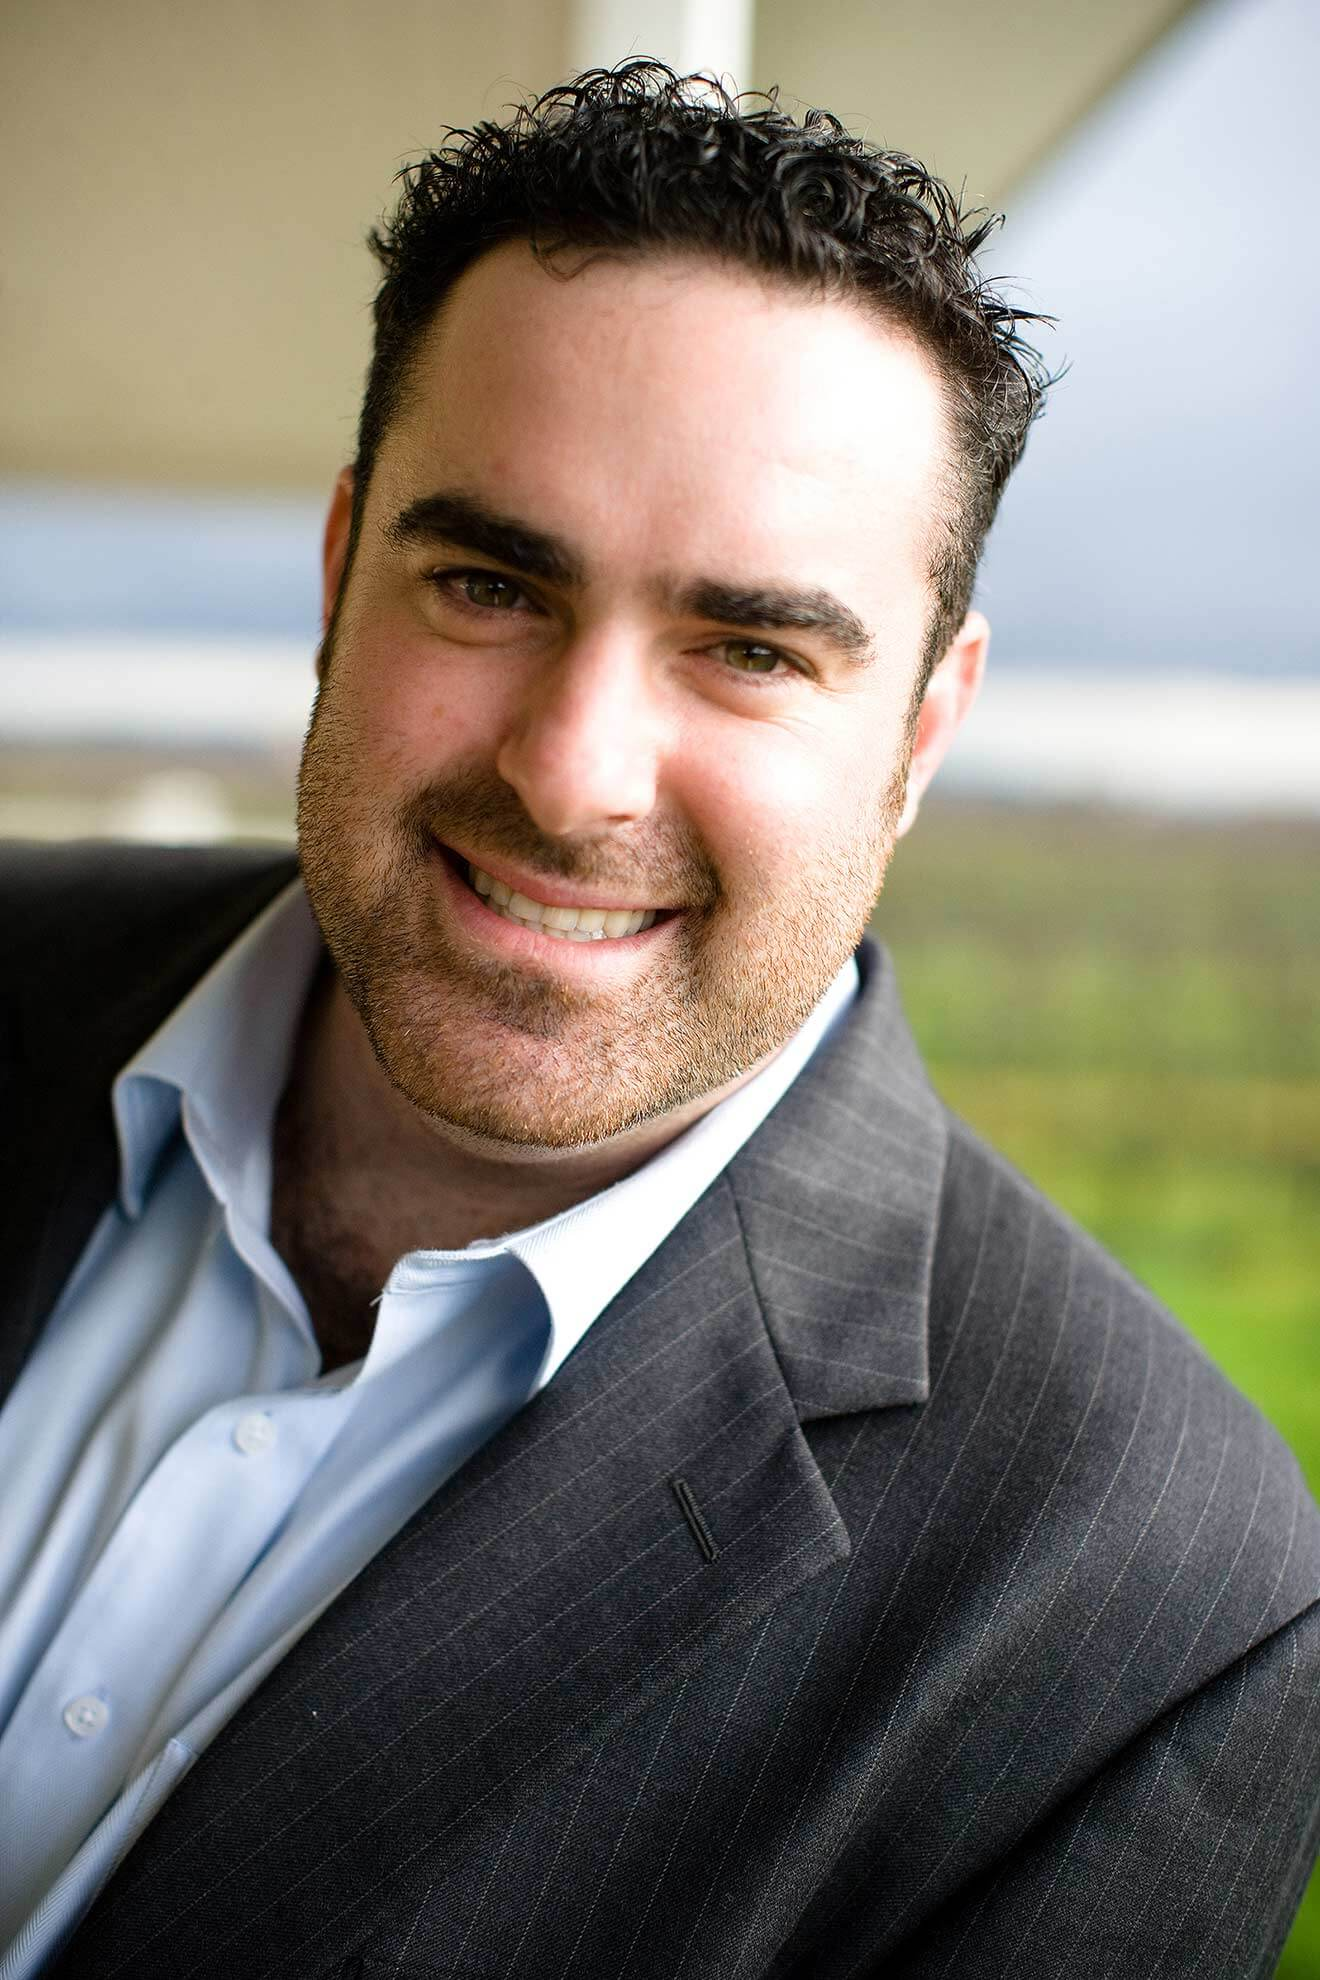 Jake Kloberdanz - CEO and Co-Founder of ONEHOPE Wine